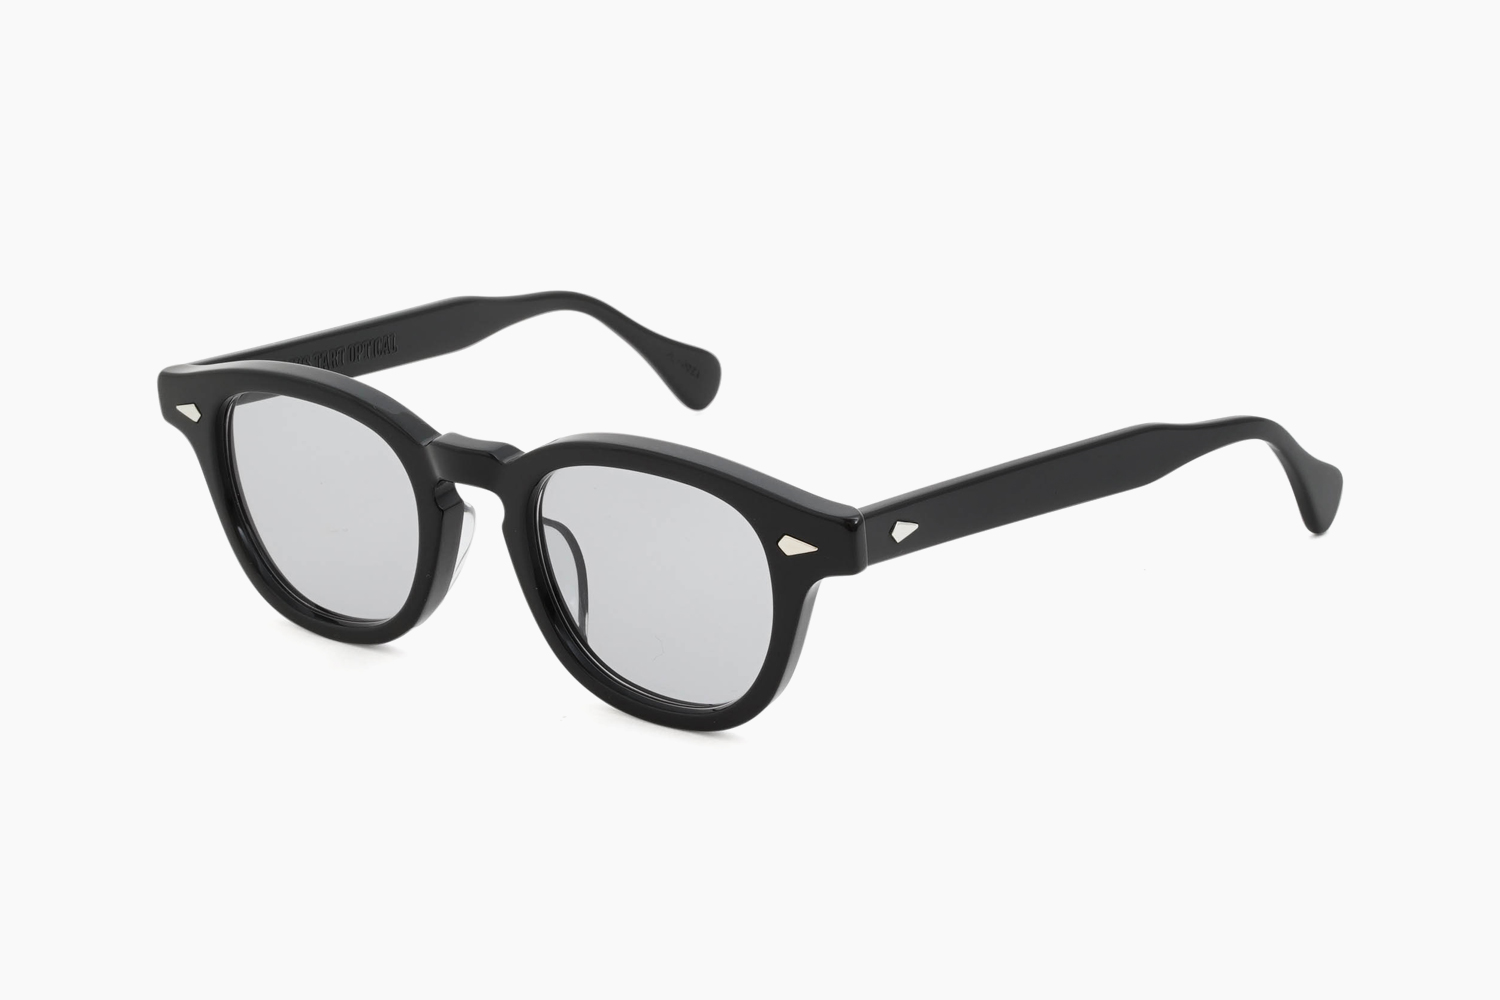 AR 46 SG - Black|SUNGLASSES COLLECTION - 21SS